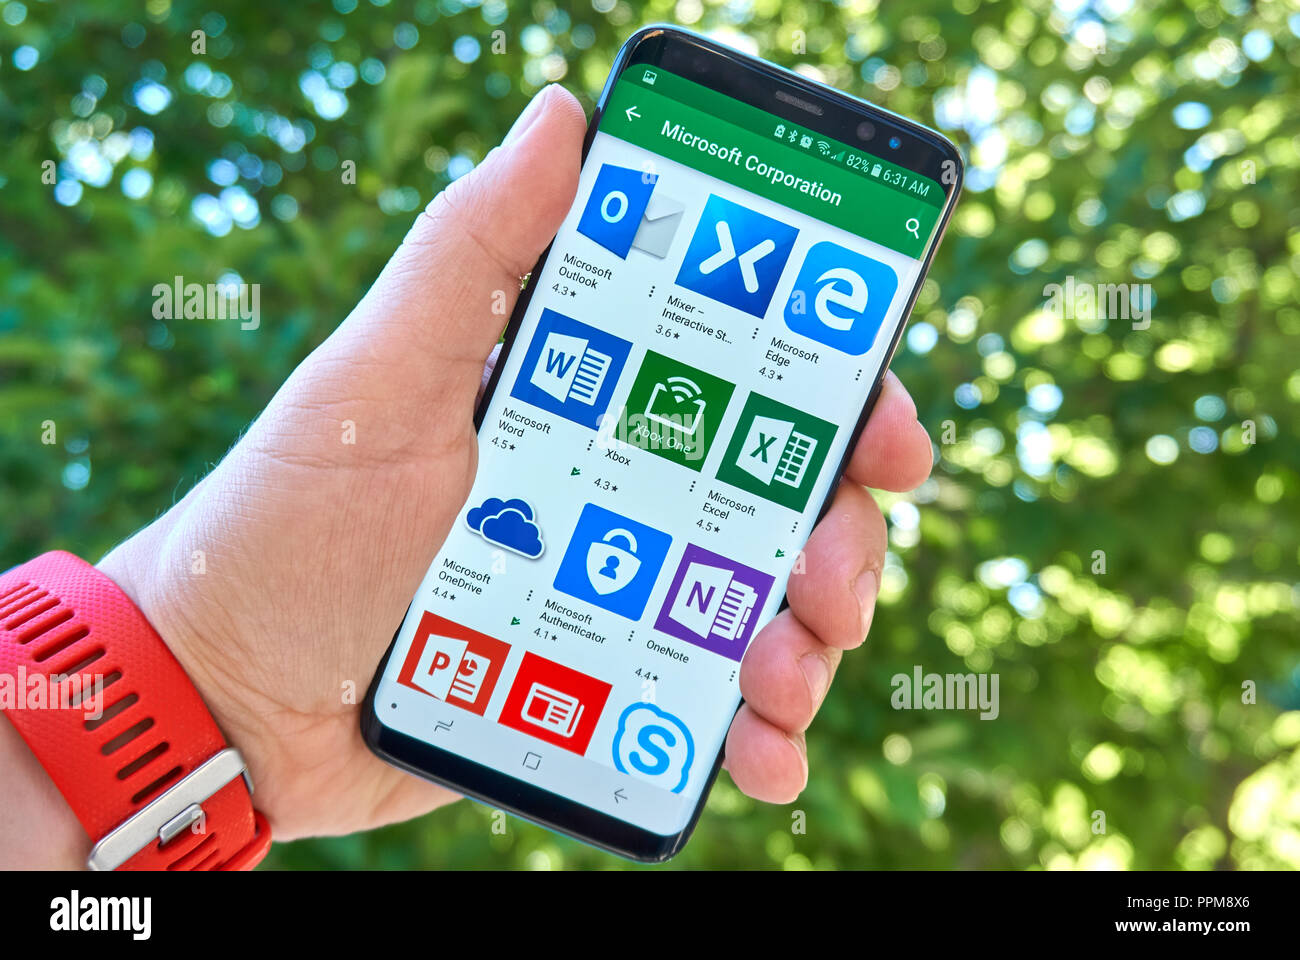 MONTREAL, CANADA - August 28, 2018: Different Microsoft android apps